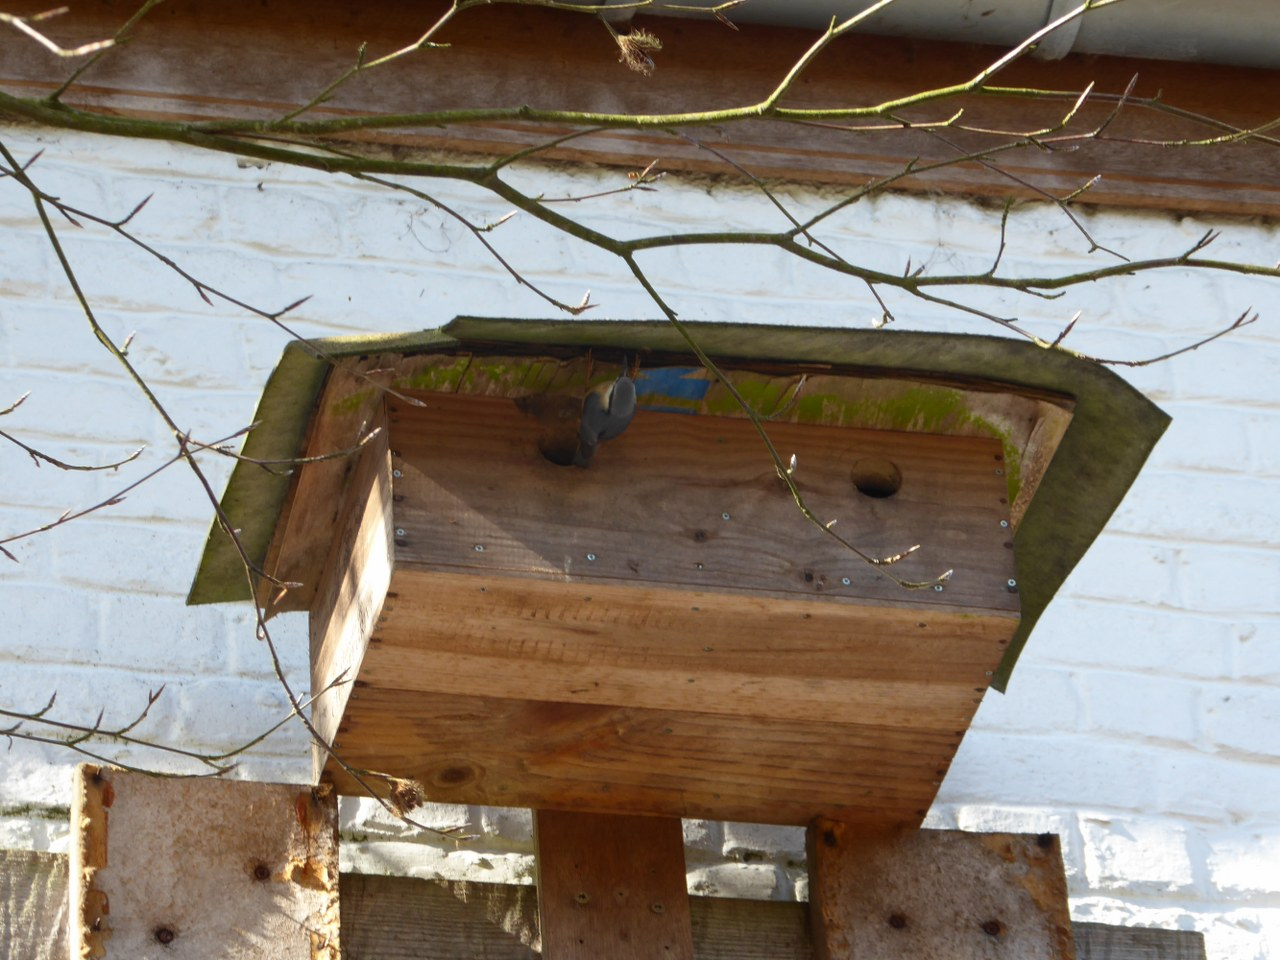 GR121_nestboxes (3)